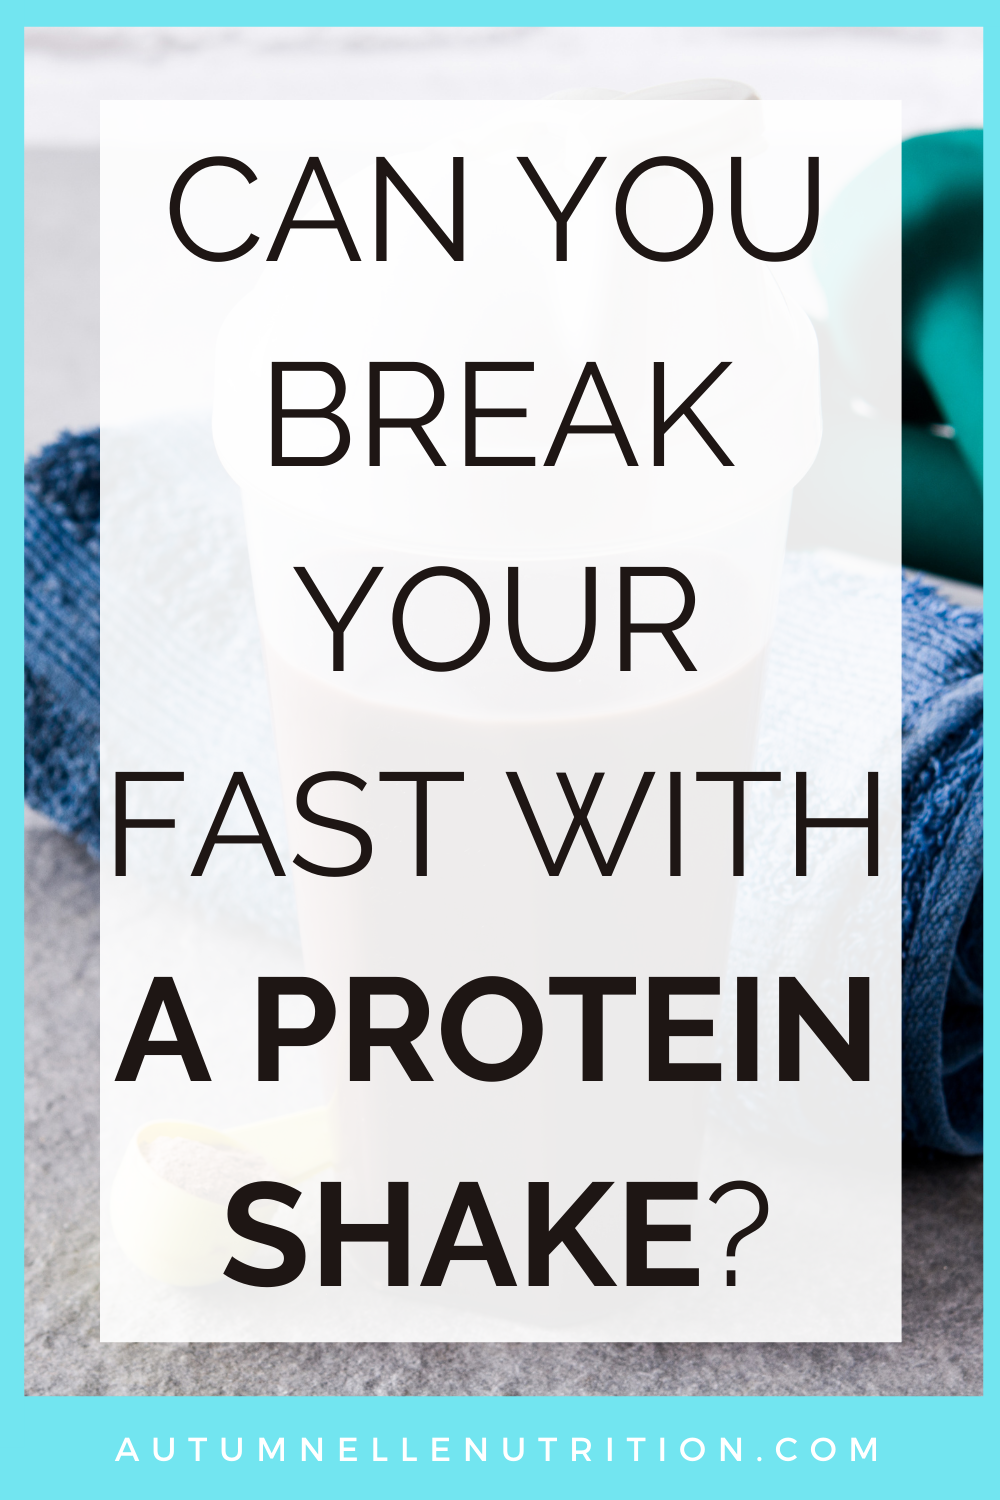 protein shake after fasting